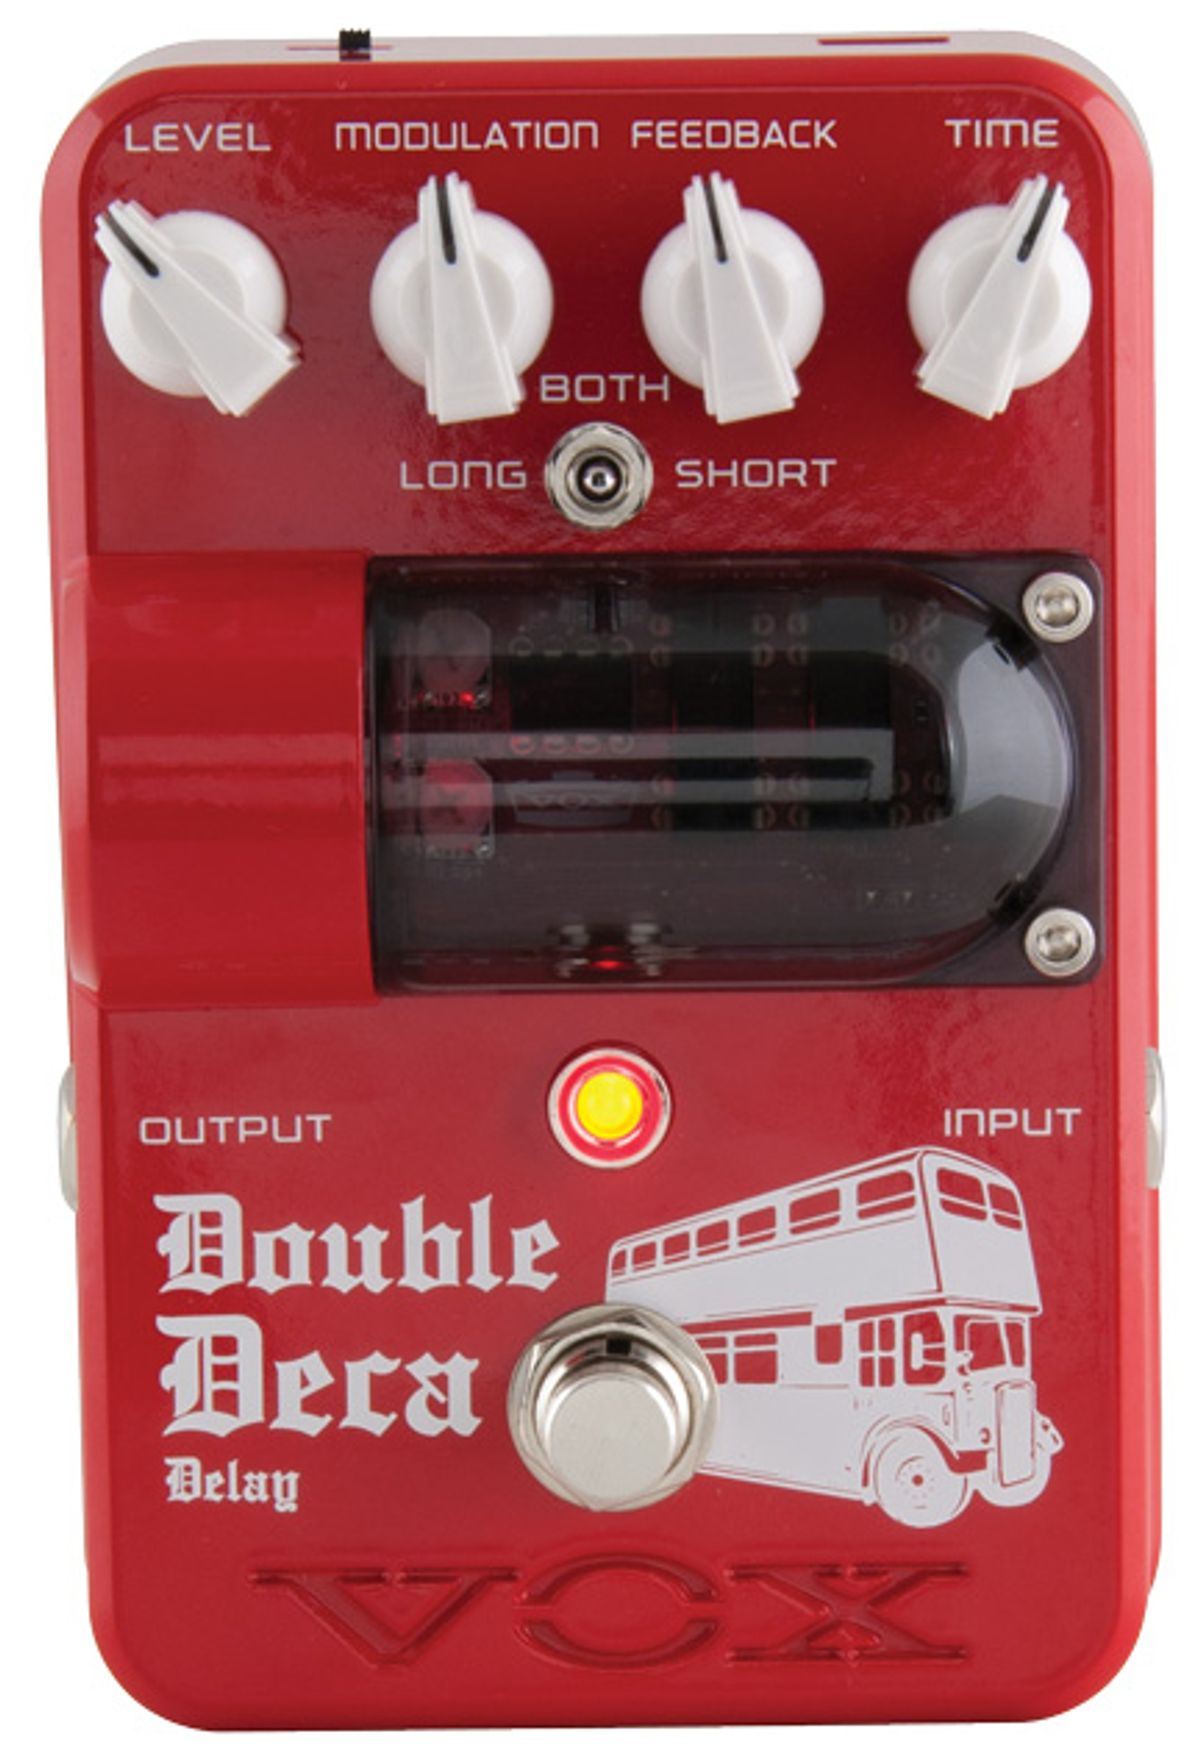 Vox Double Deca Analog Delay Review